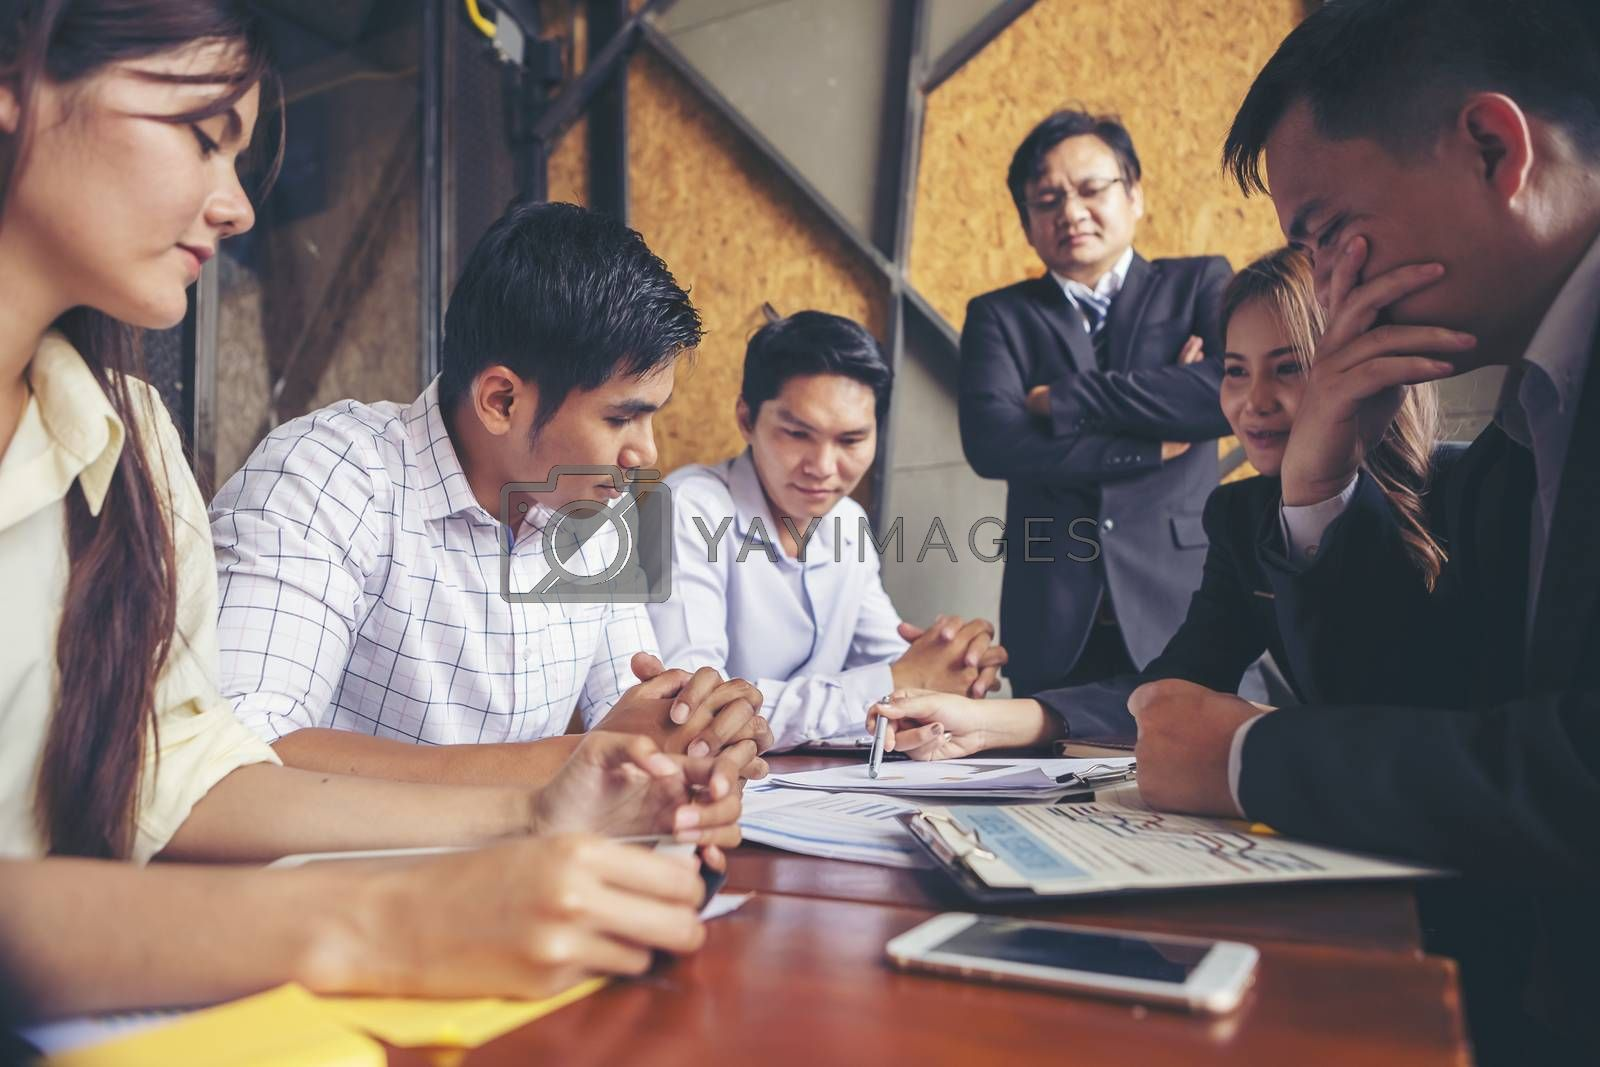 Group of young businessmen are meeting and presenting a plan for successful marketing and business planning.